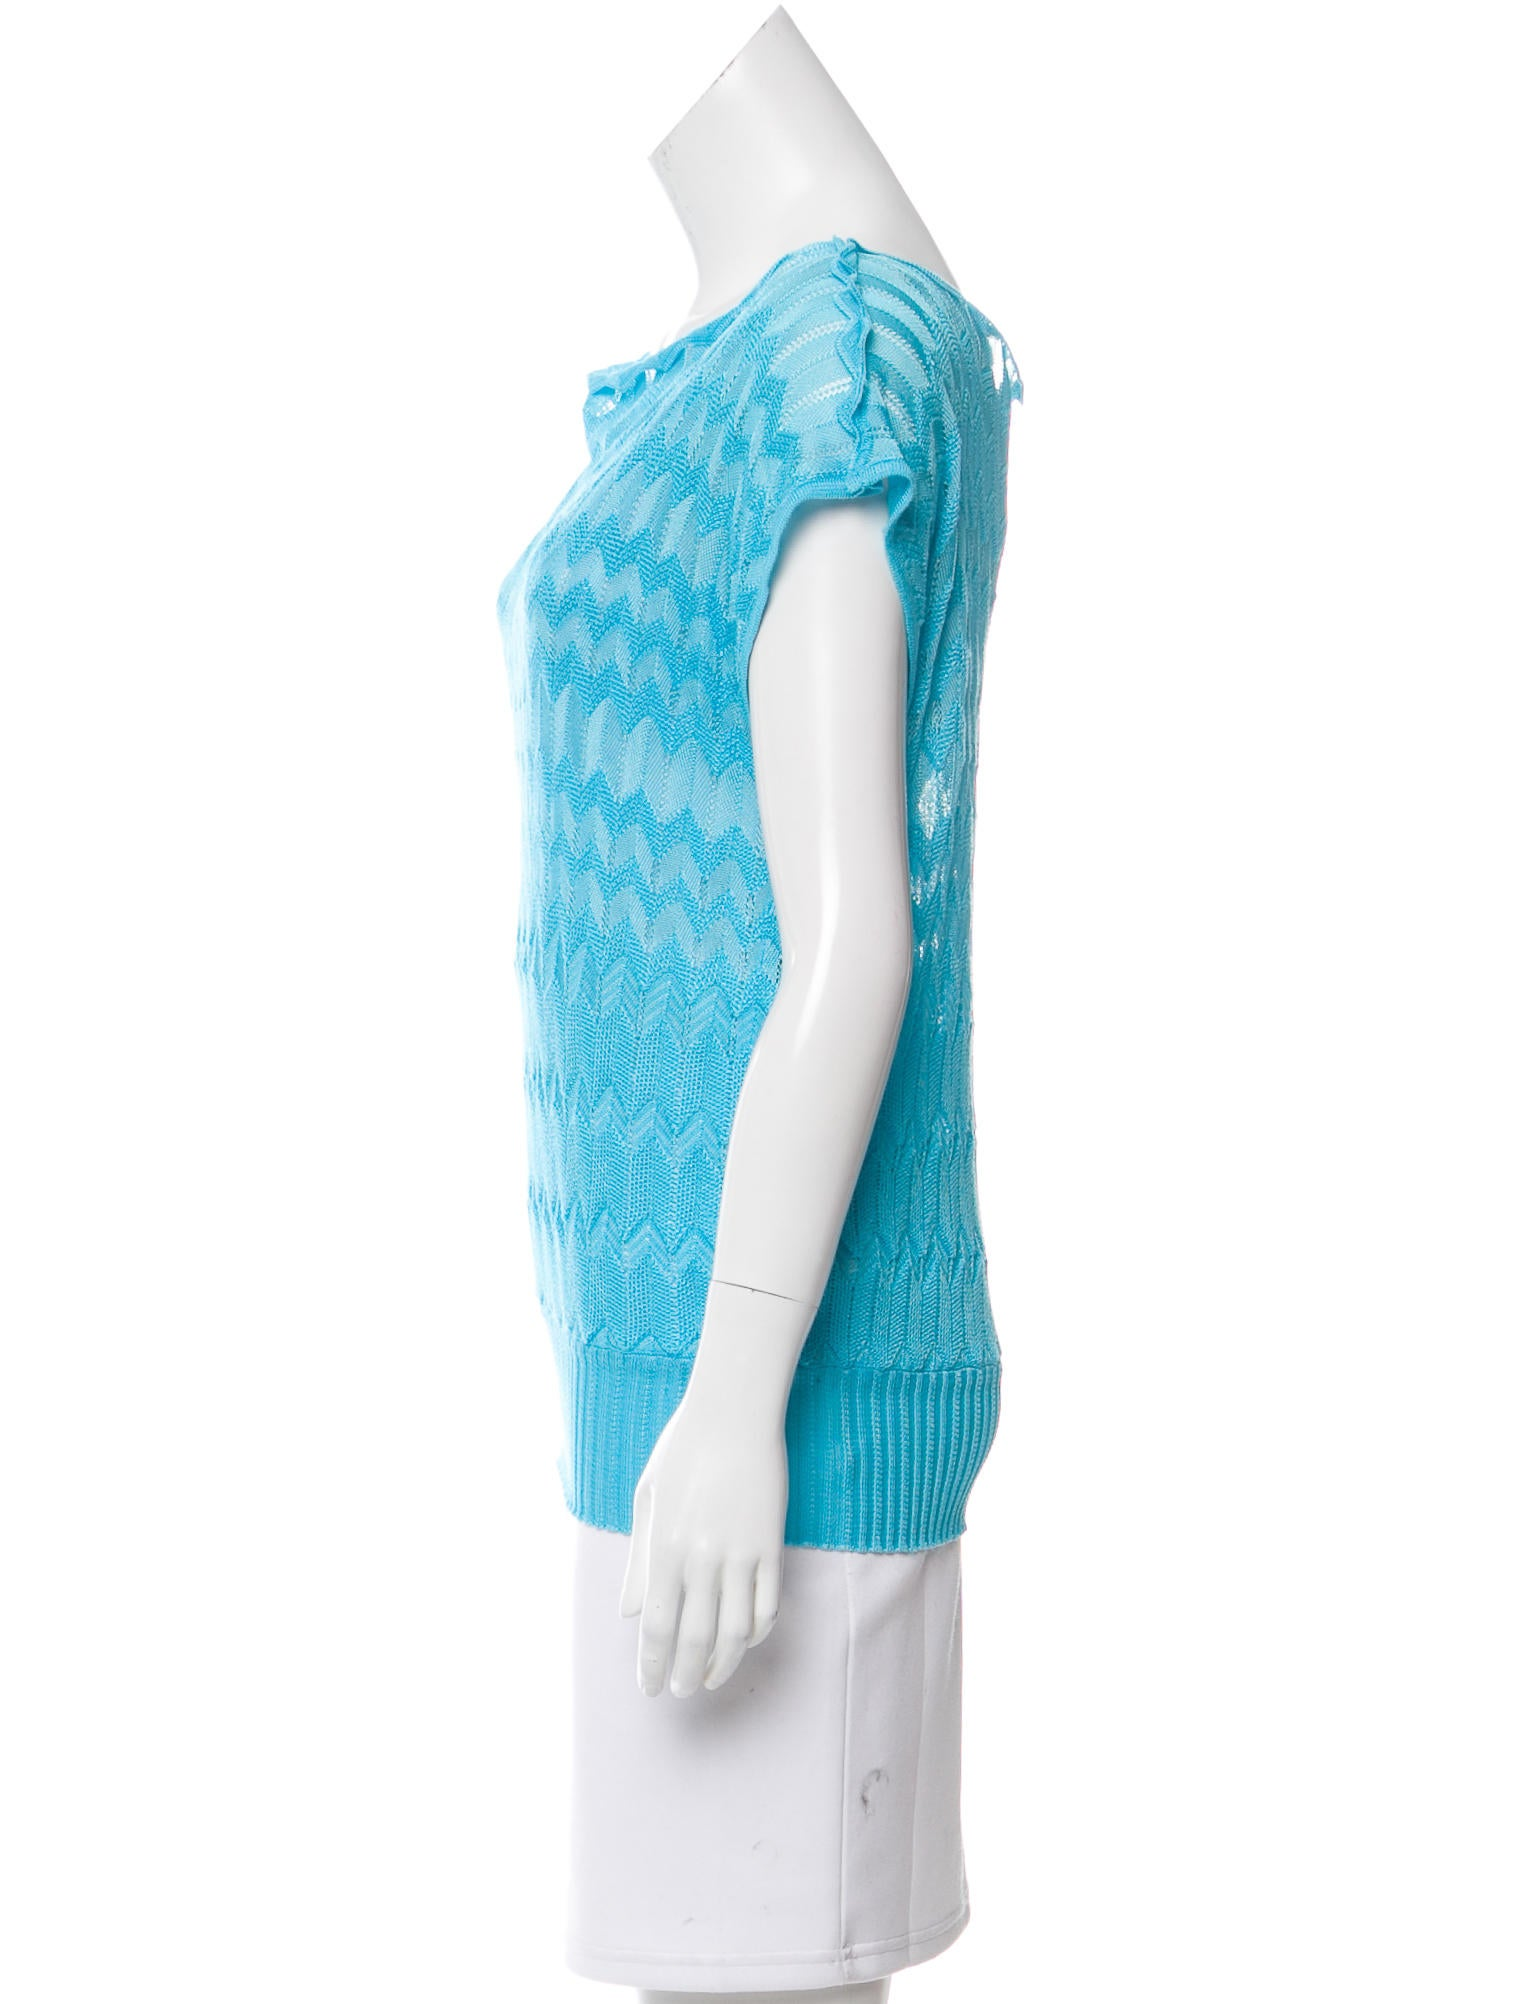 m missoni sleeveless knit top clothing wm437522 the realreal. Black Bedroom Furniture Sets. Home Design Ideas